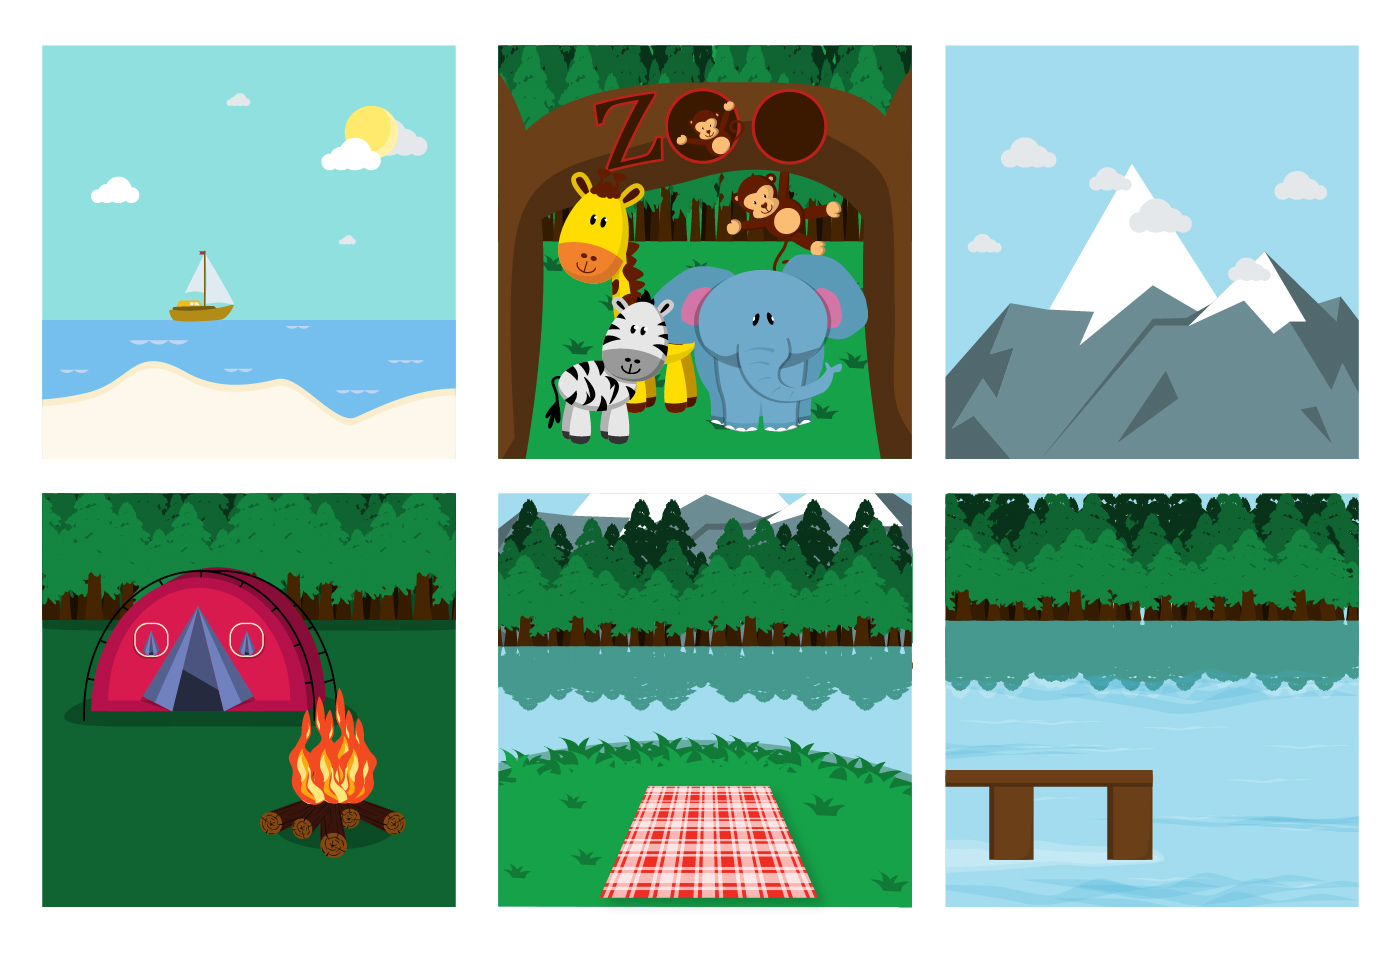 Family Picnic Place Vectors Download Free Vector Art Stock Graphics Amp Images